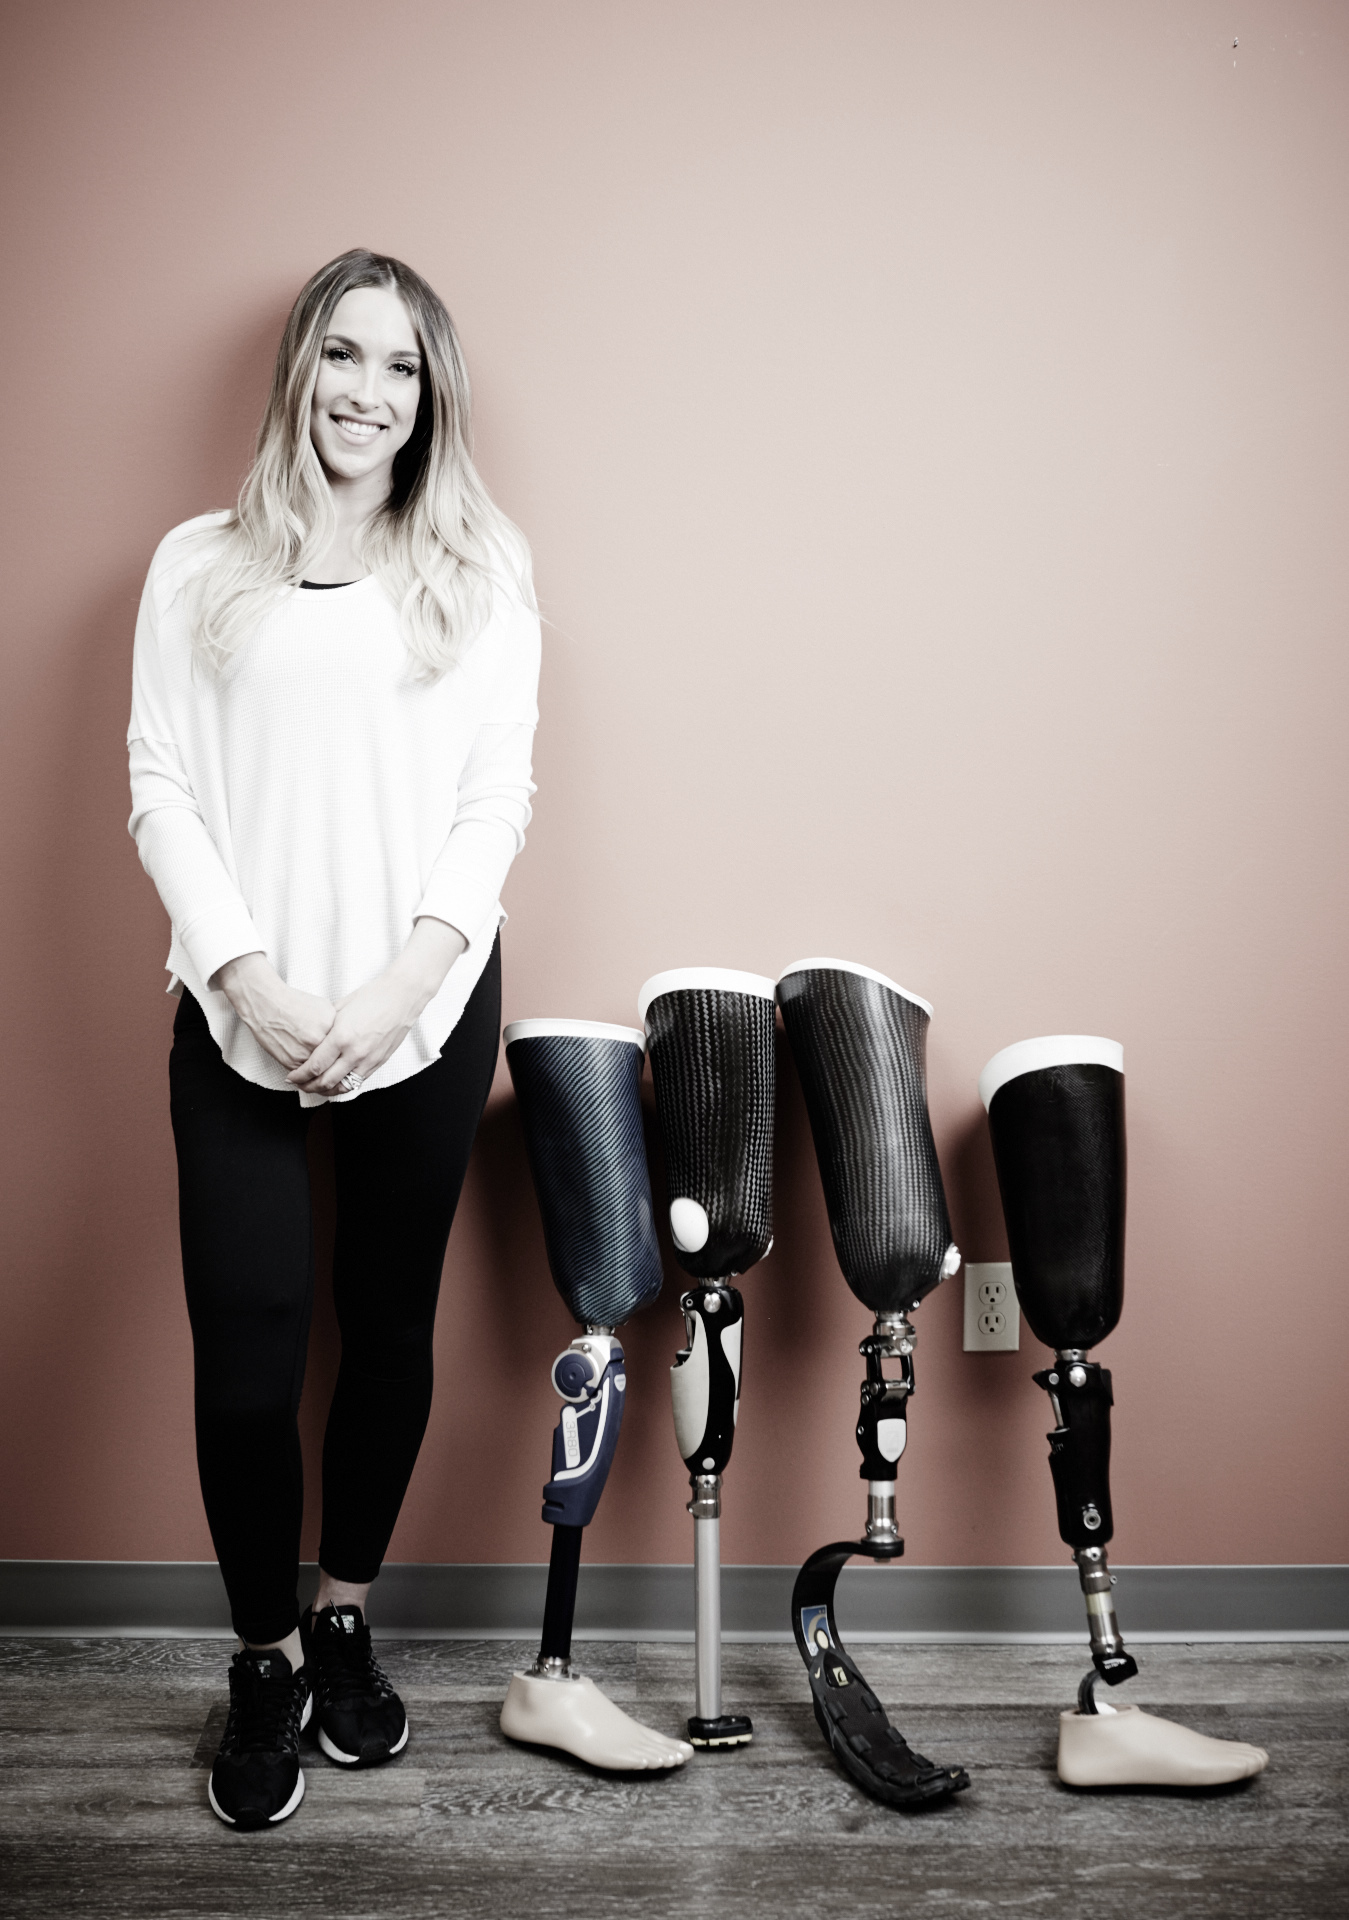 young woman with prosthesis collection